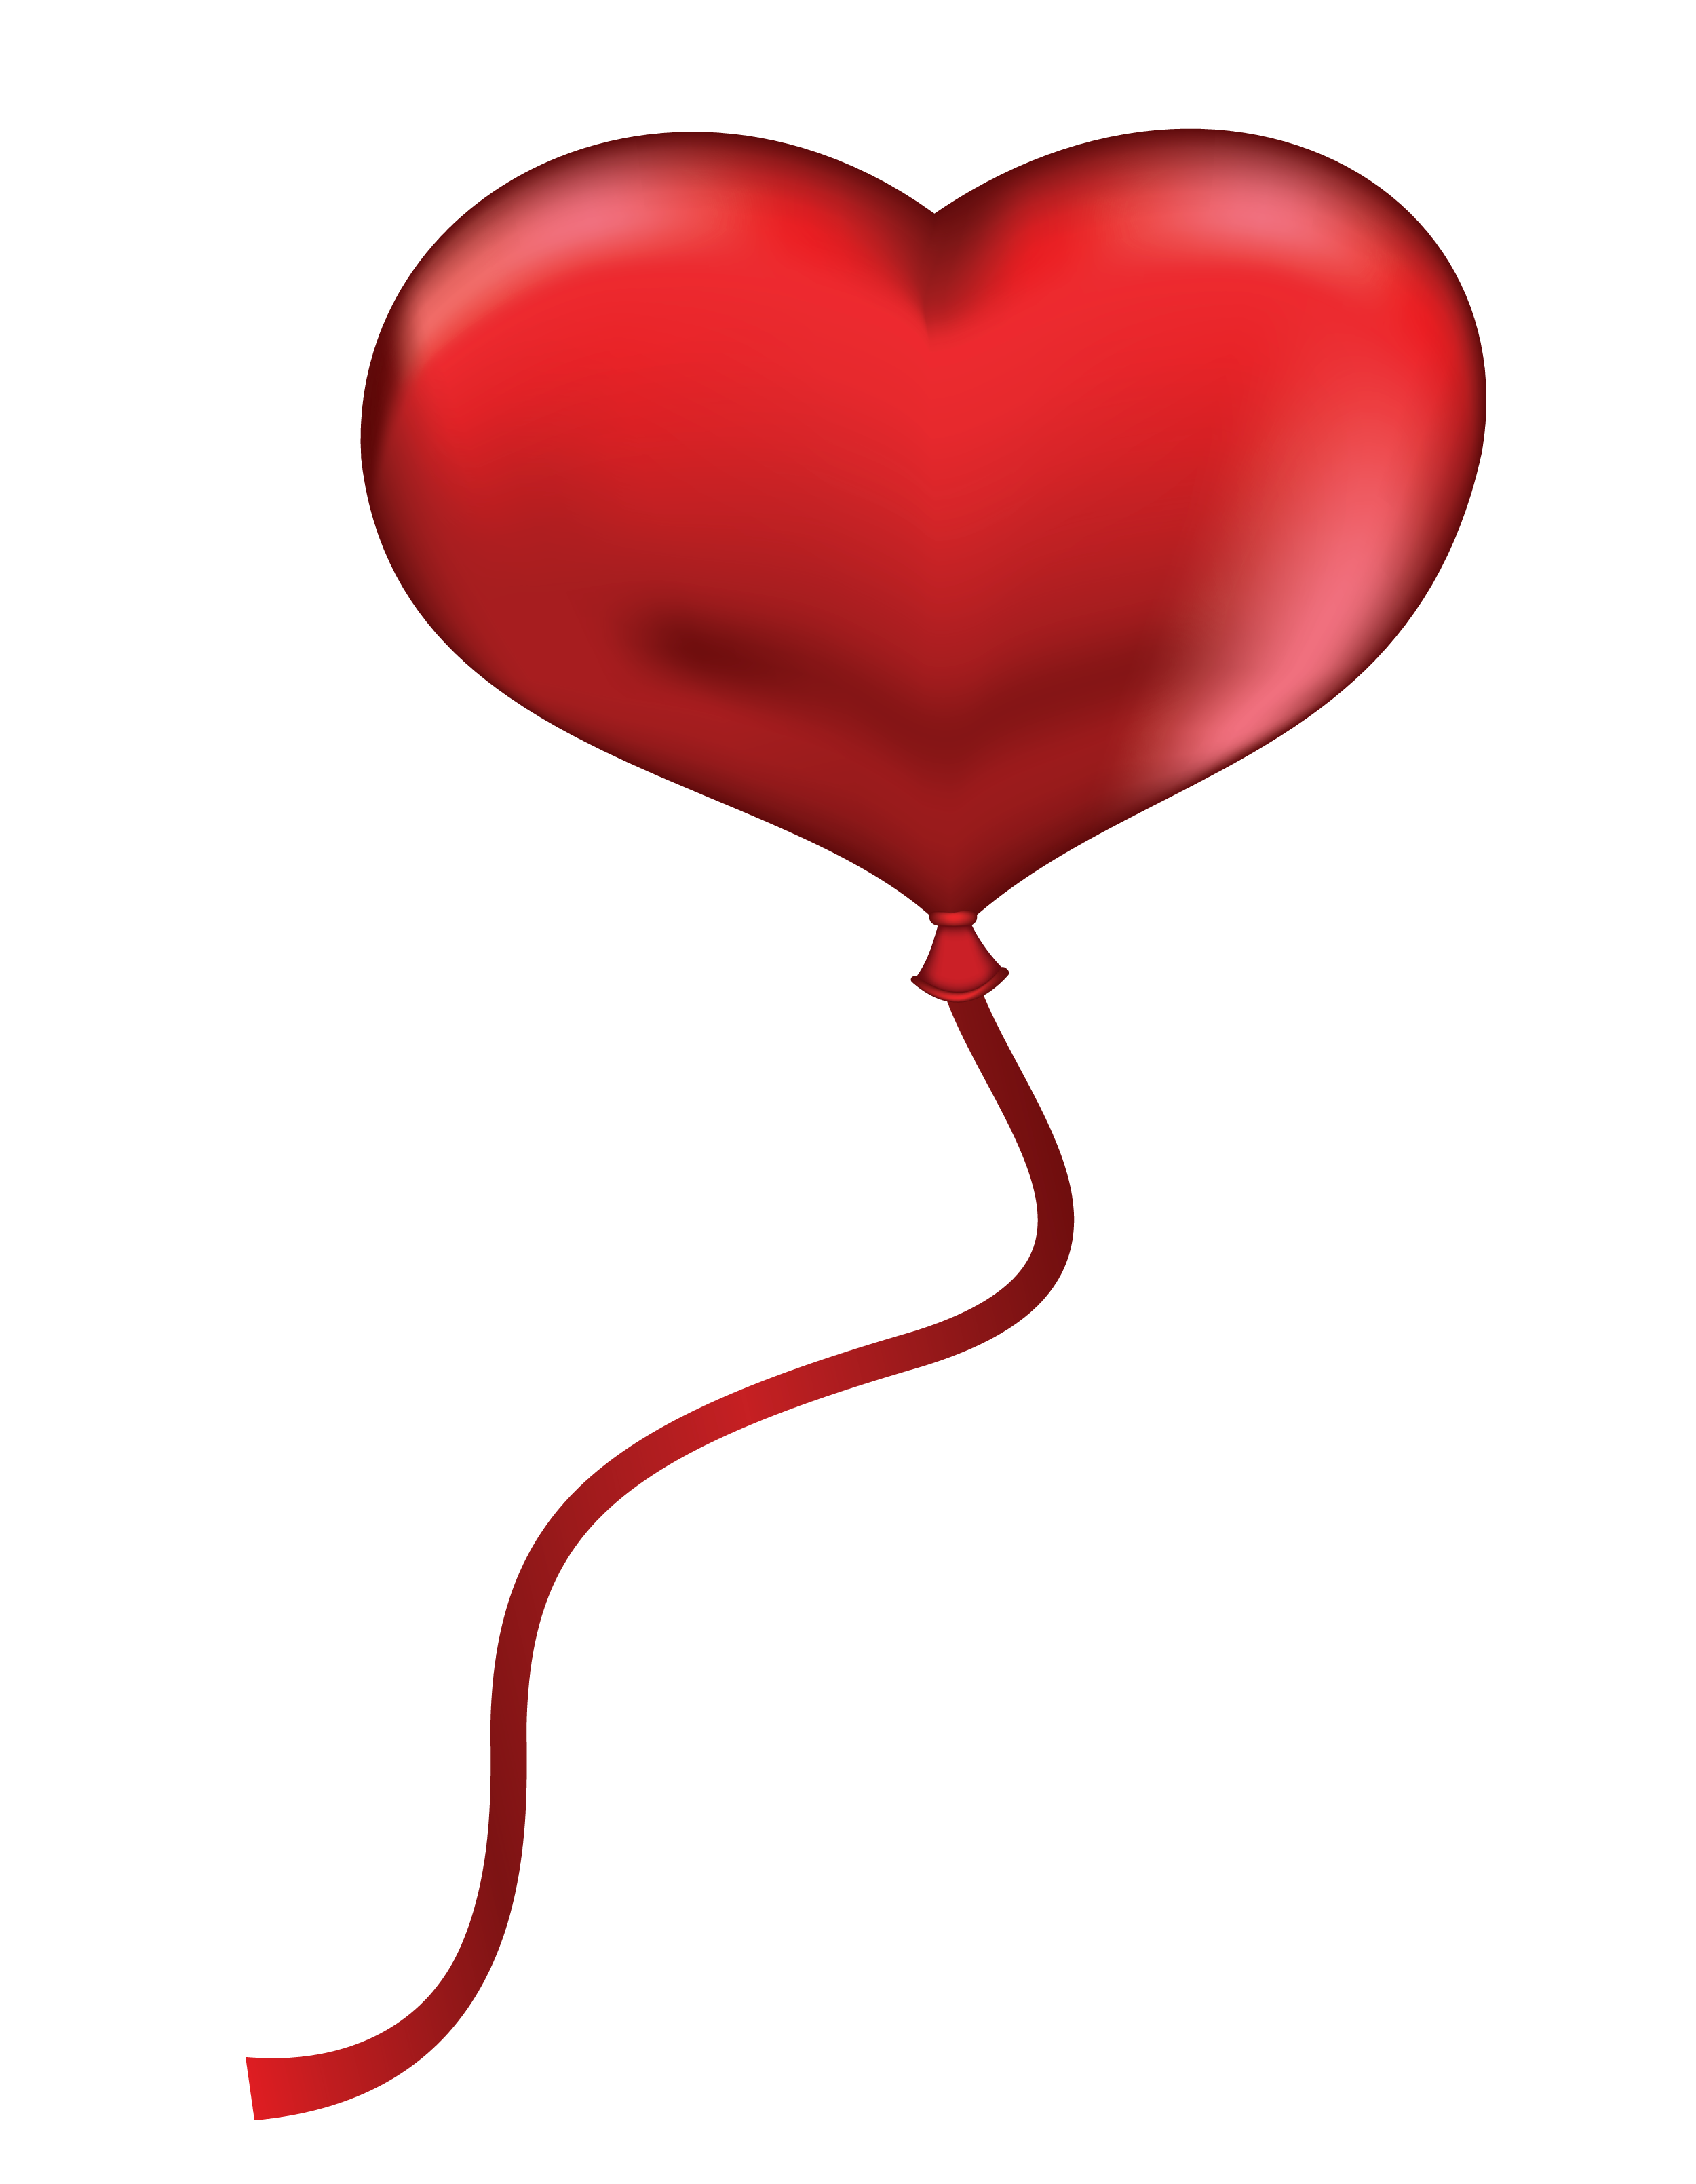 Valentine clipart mail. Pix for red heart